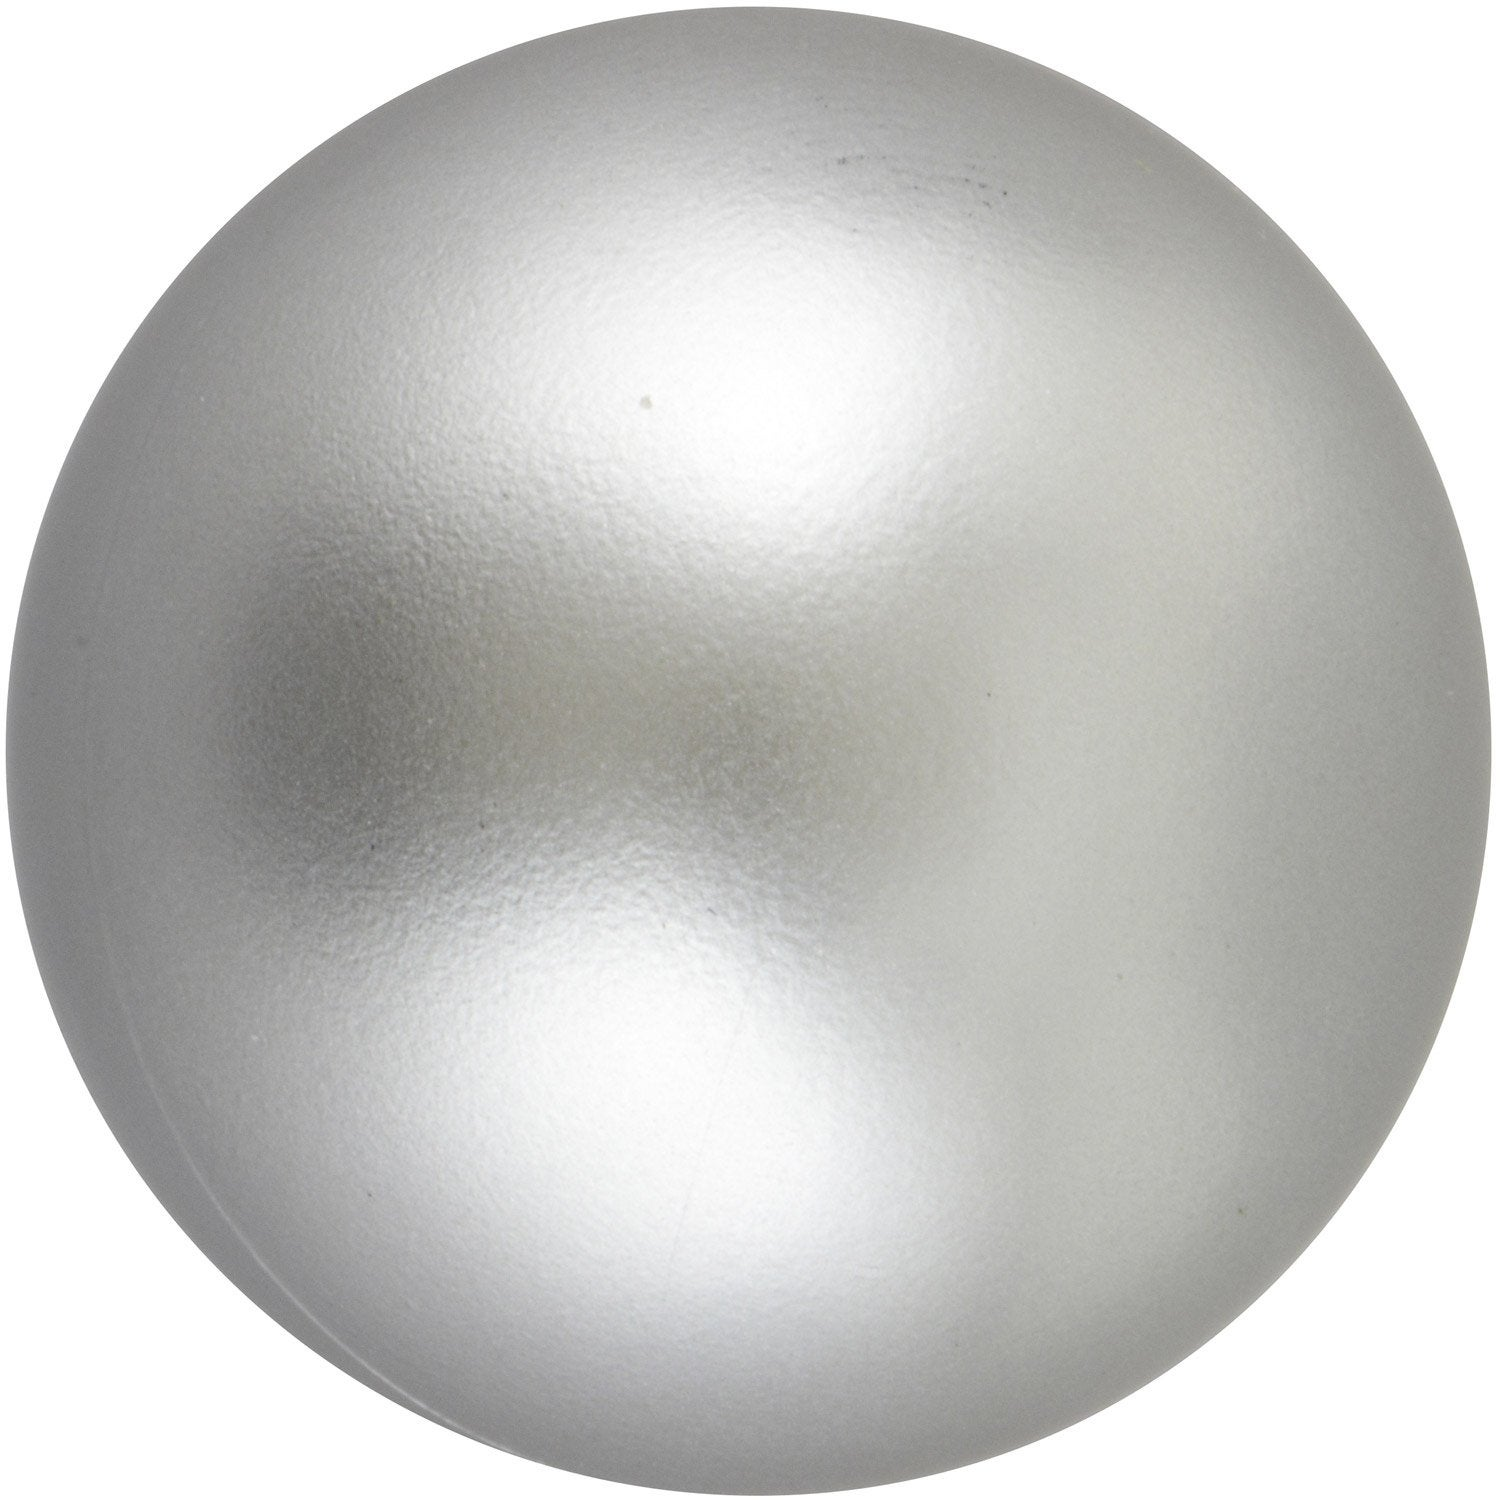 Bouton de meuble boule plastique nickel leroy merlin for Boule lumineuse leroy merlin